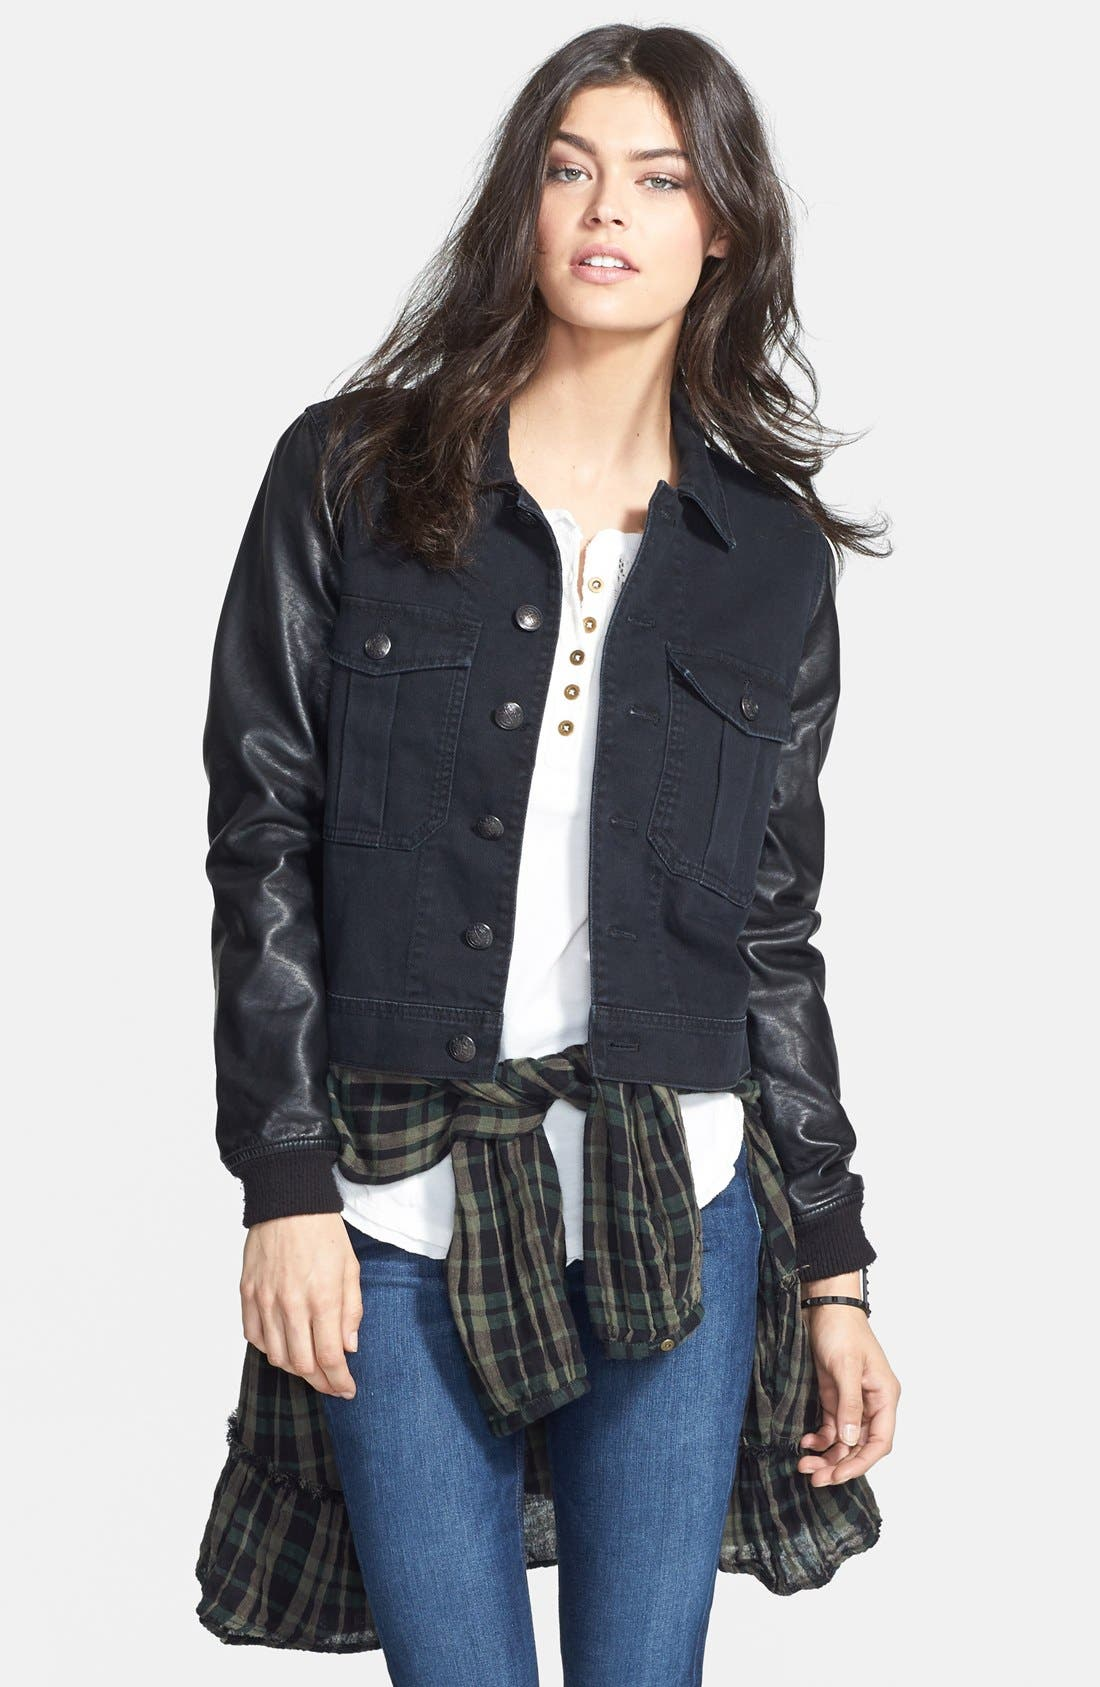 Alternate Image 1 Selected - Free People Faux Leather Sleeve Denim Jacket (Nordstrom Exclusive)